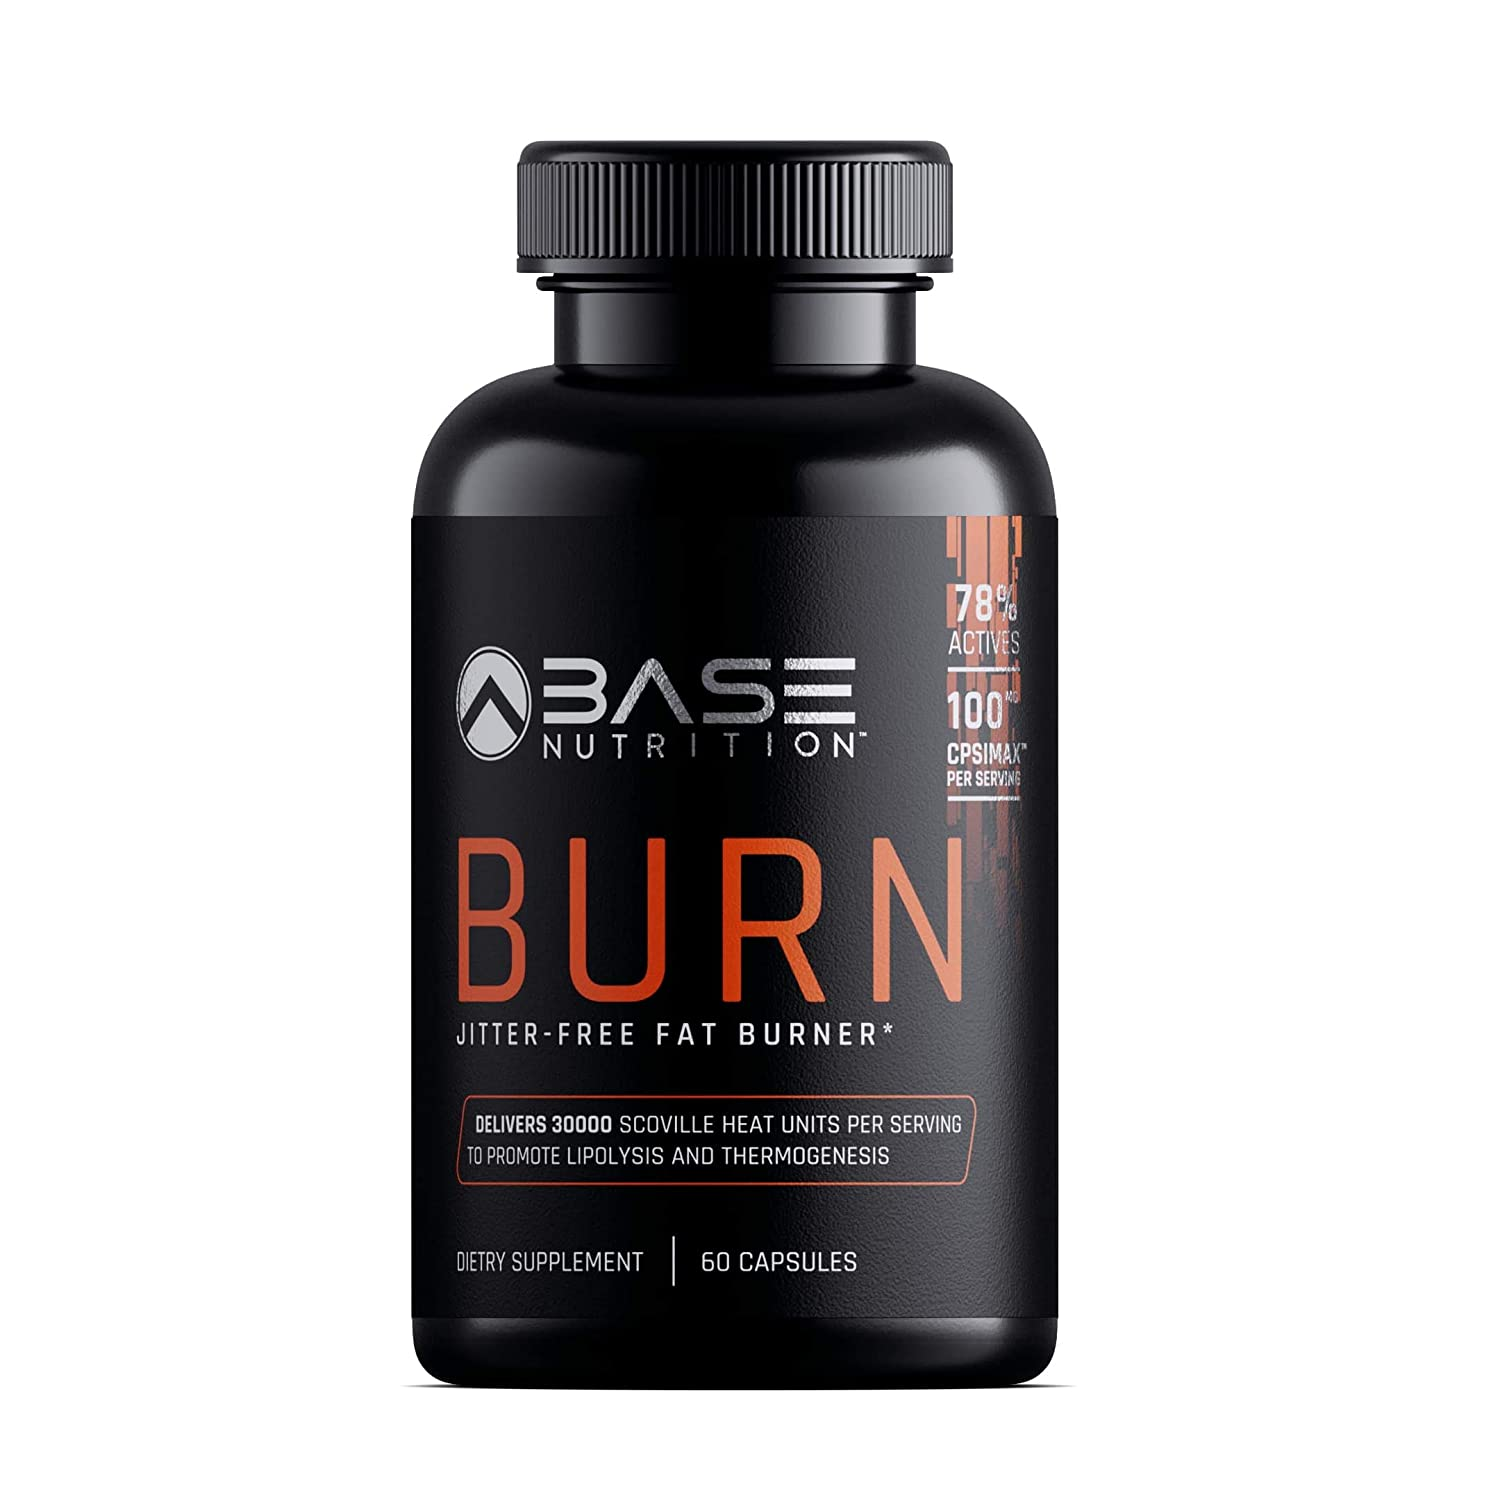 Base Burn Thermogenic Fat Burner Weight Loss Pills For Low Jitter Sige Vcsos Women Men Appetite Suppressant Supplement That Works Best